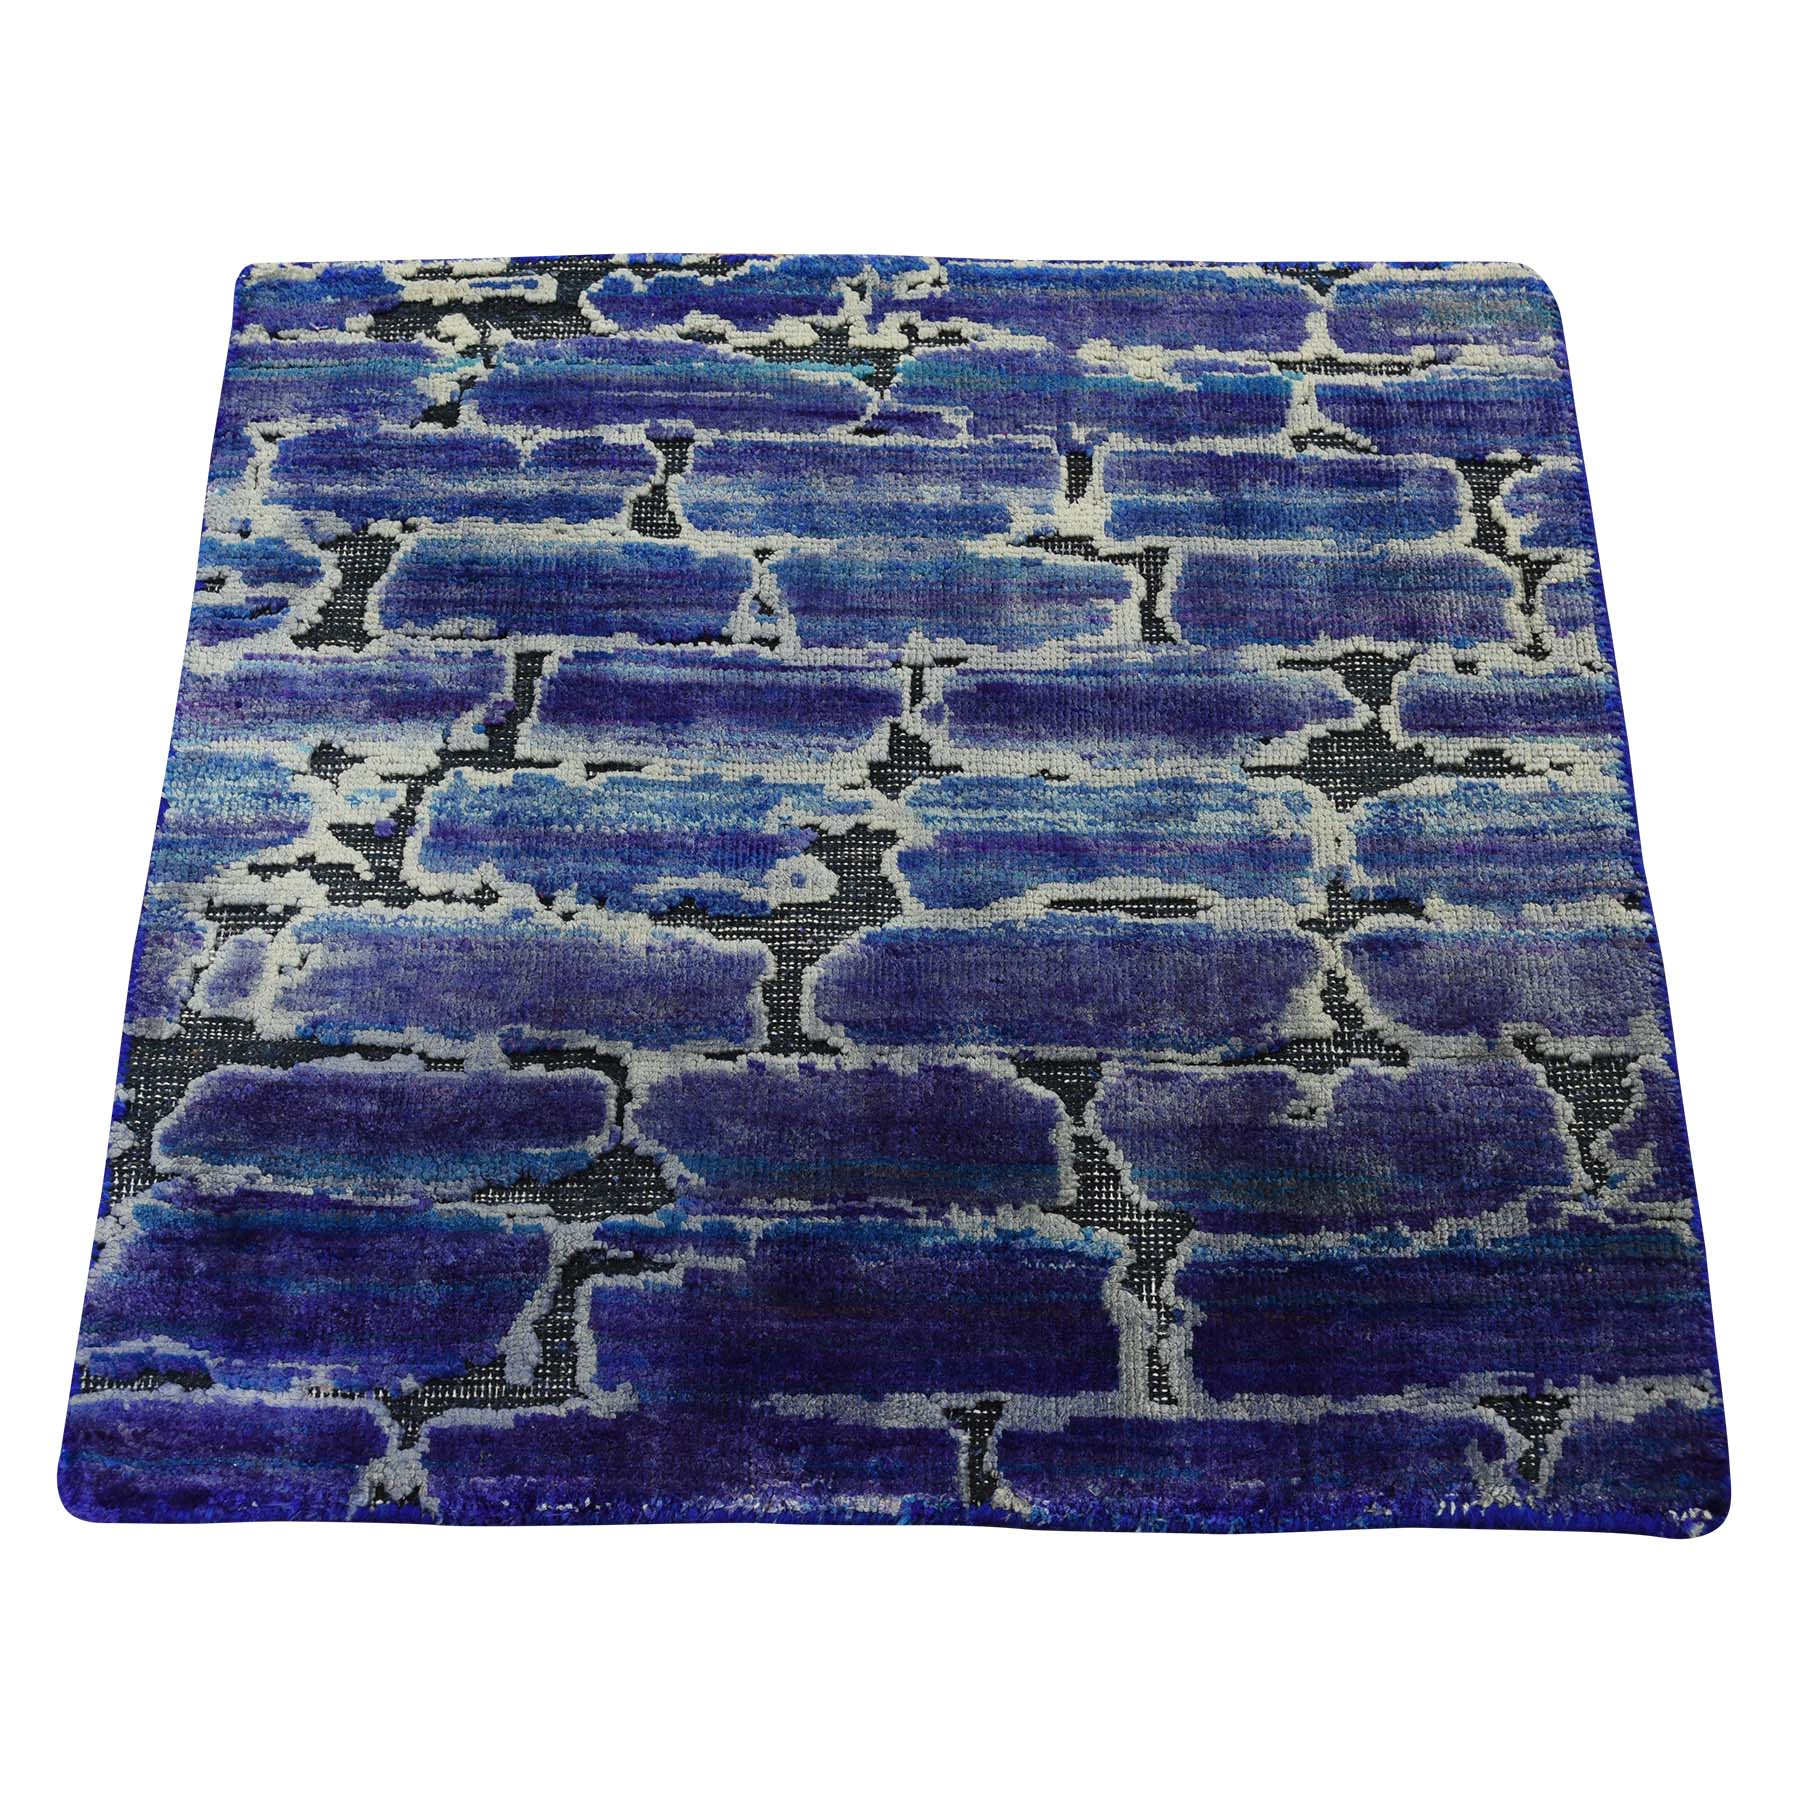 2'X2' Diminishing Bricks Sari Silk With Oxidized Wool Hand-Knotted Oriental Rug moadc6d8